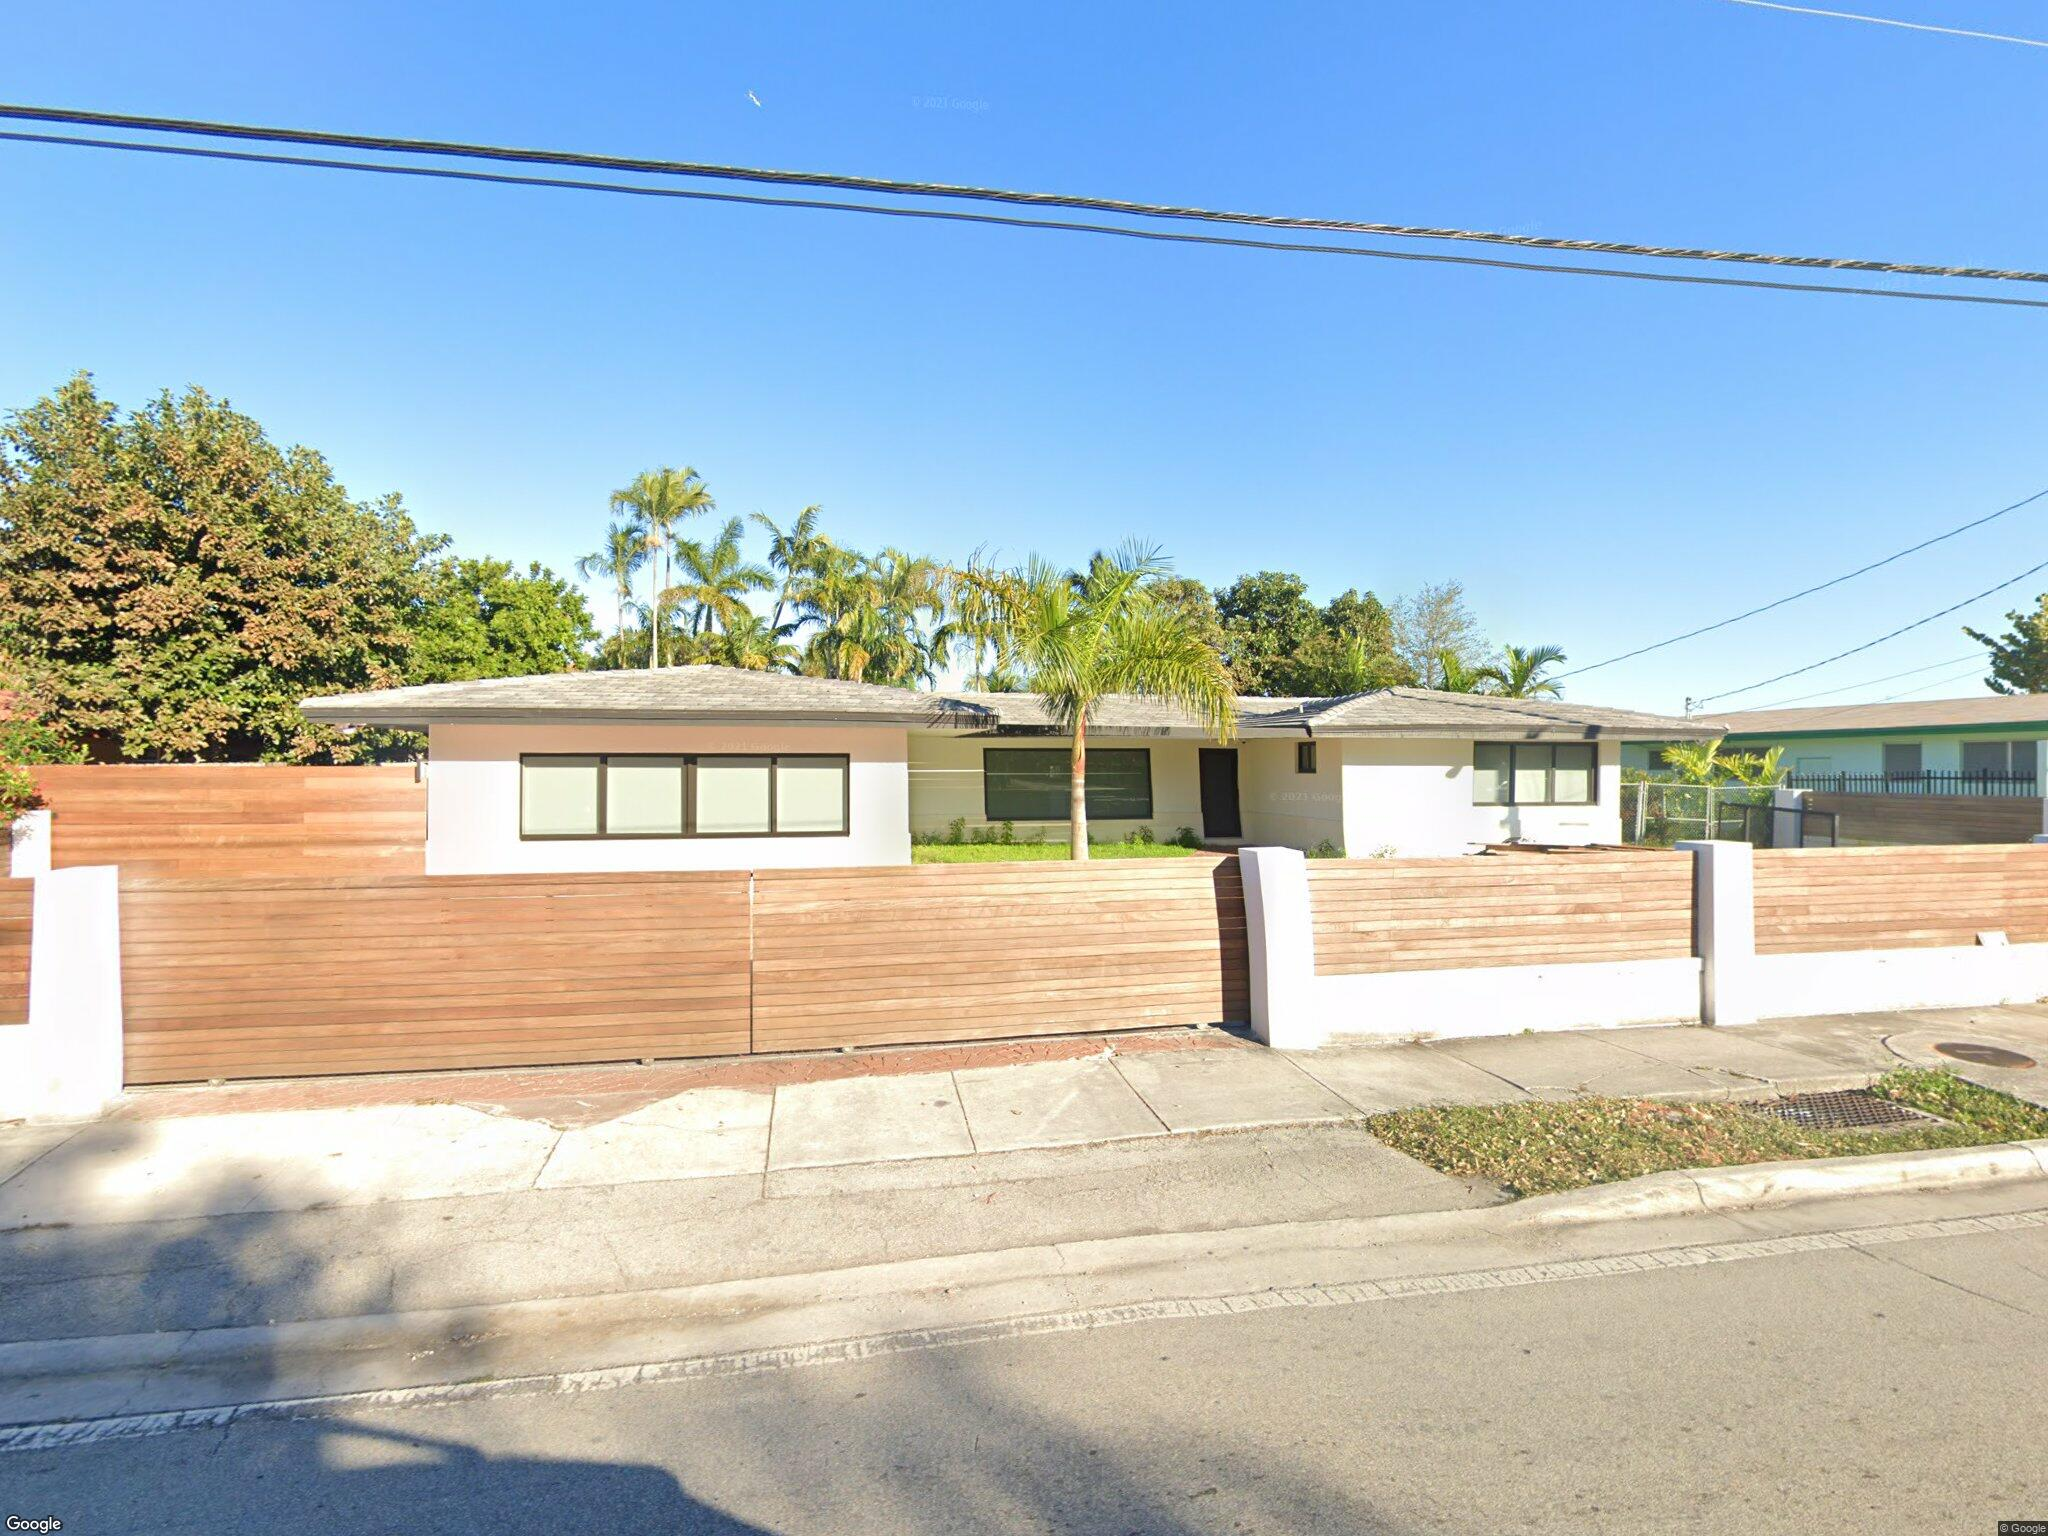 19101 NE 18th Ave, Miami, FL 33179   Foreclosure | Trulia